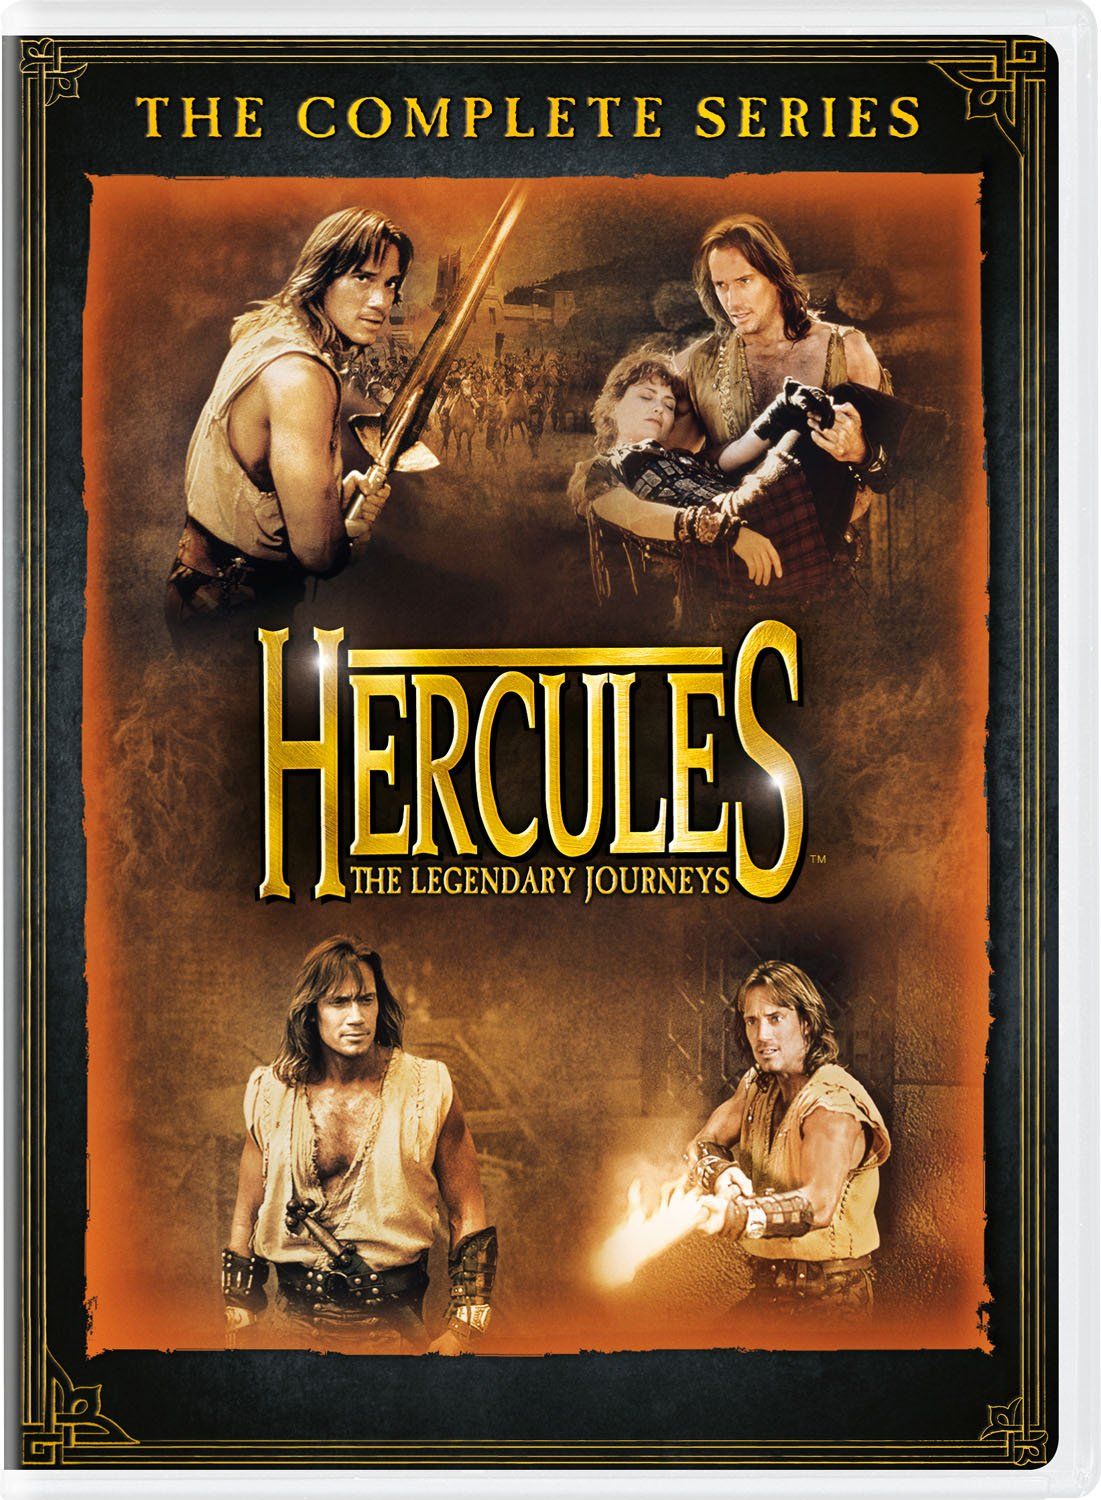 DVD : Hercules: The Legendary Journeys: The Complete Series (Boxed Set, 25PC)